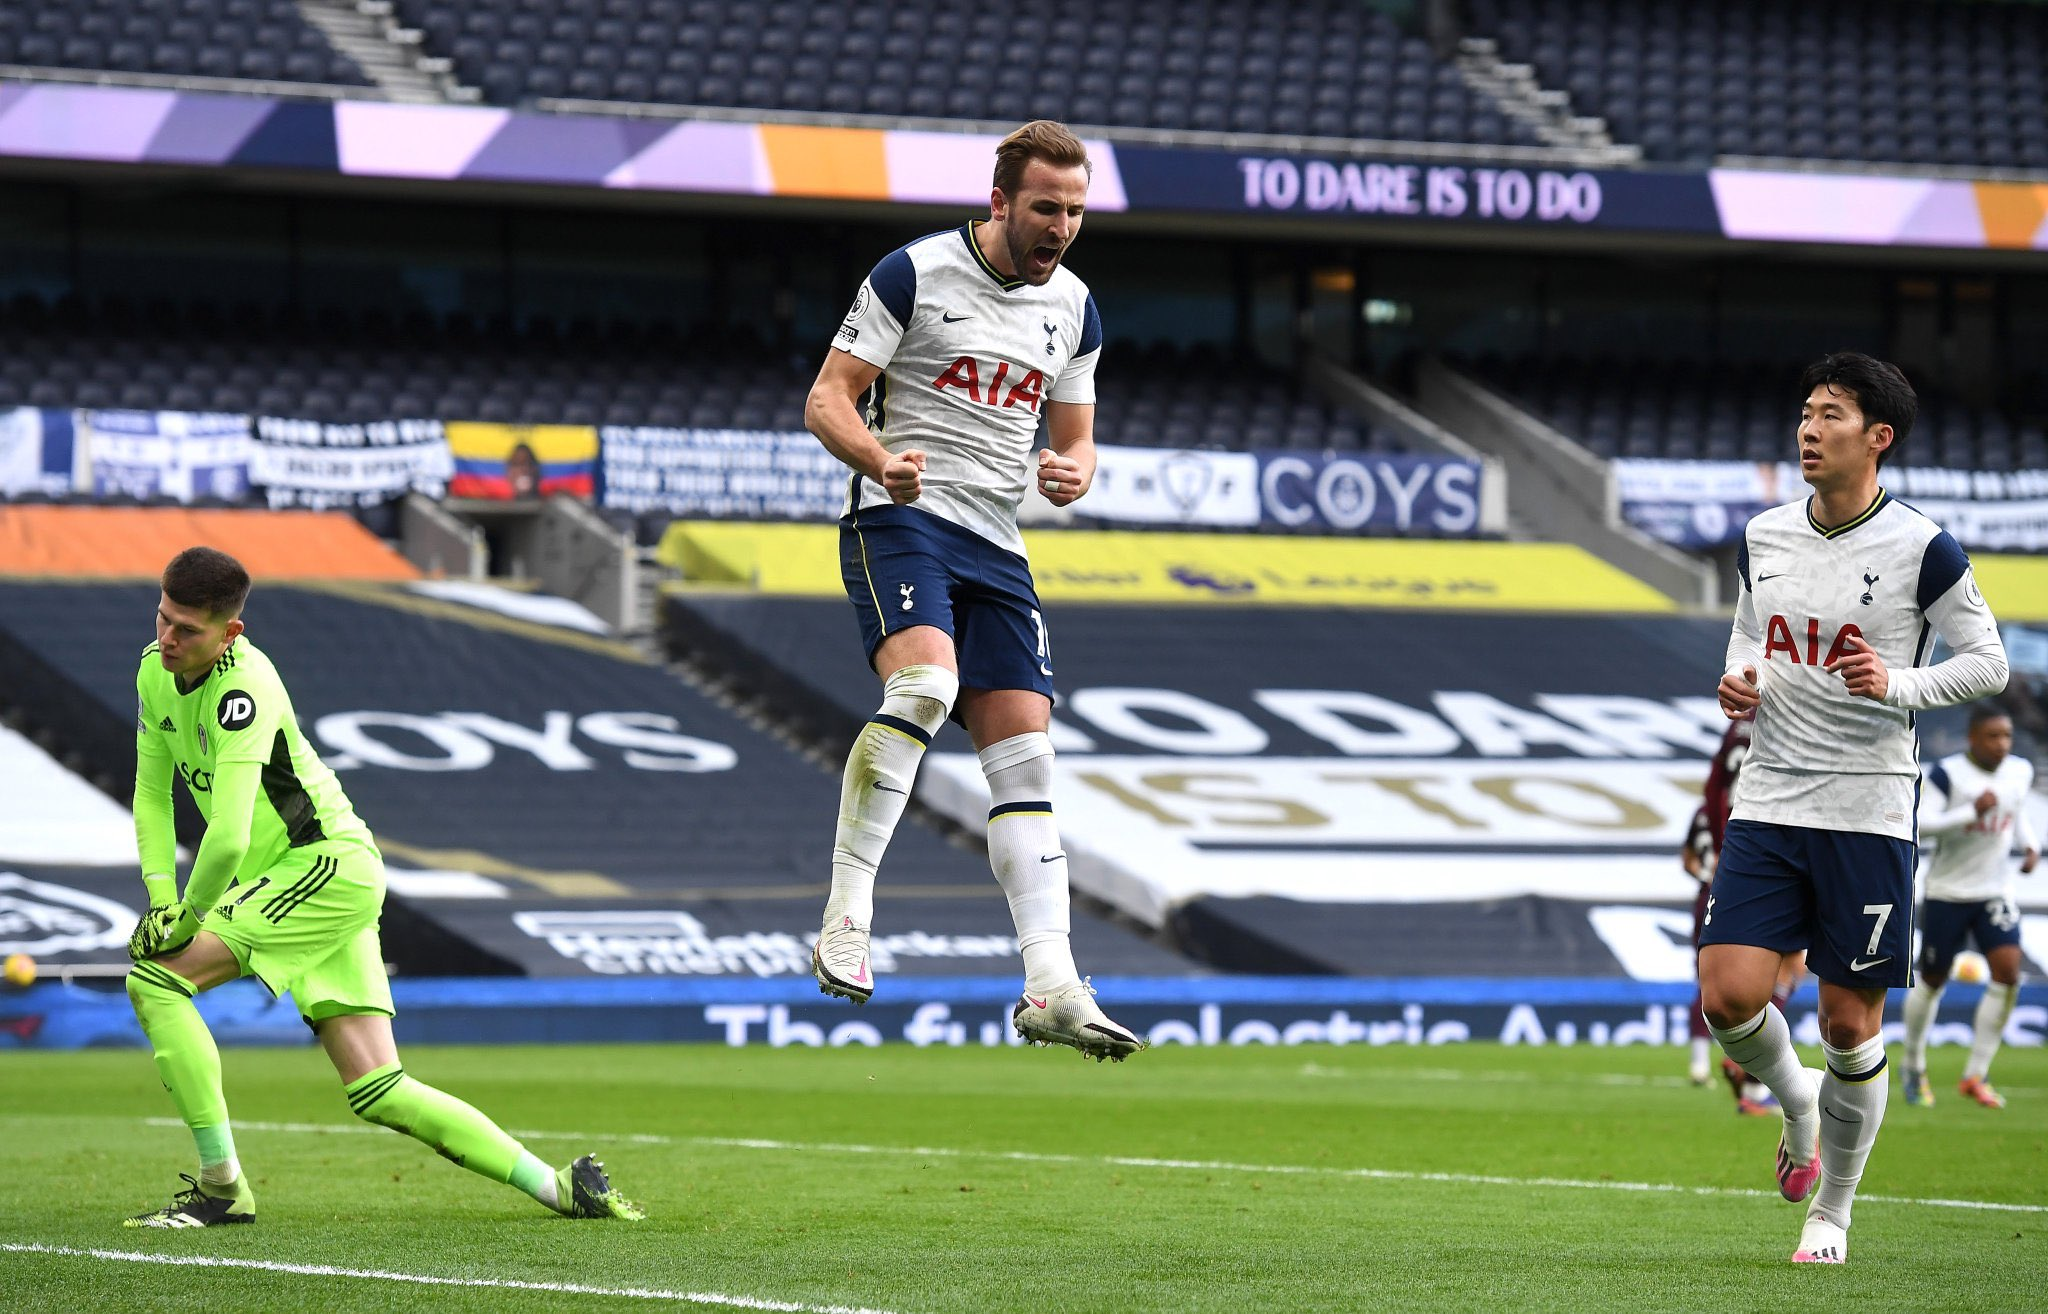 VIDEO) Tottenham golea al Leeds en la Premier League | ECUAGOL